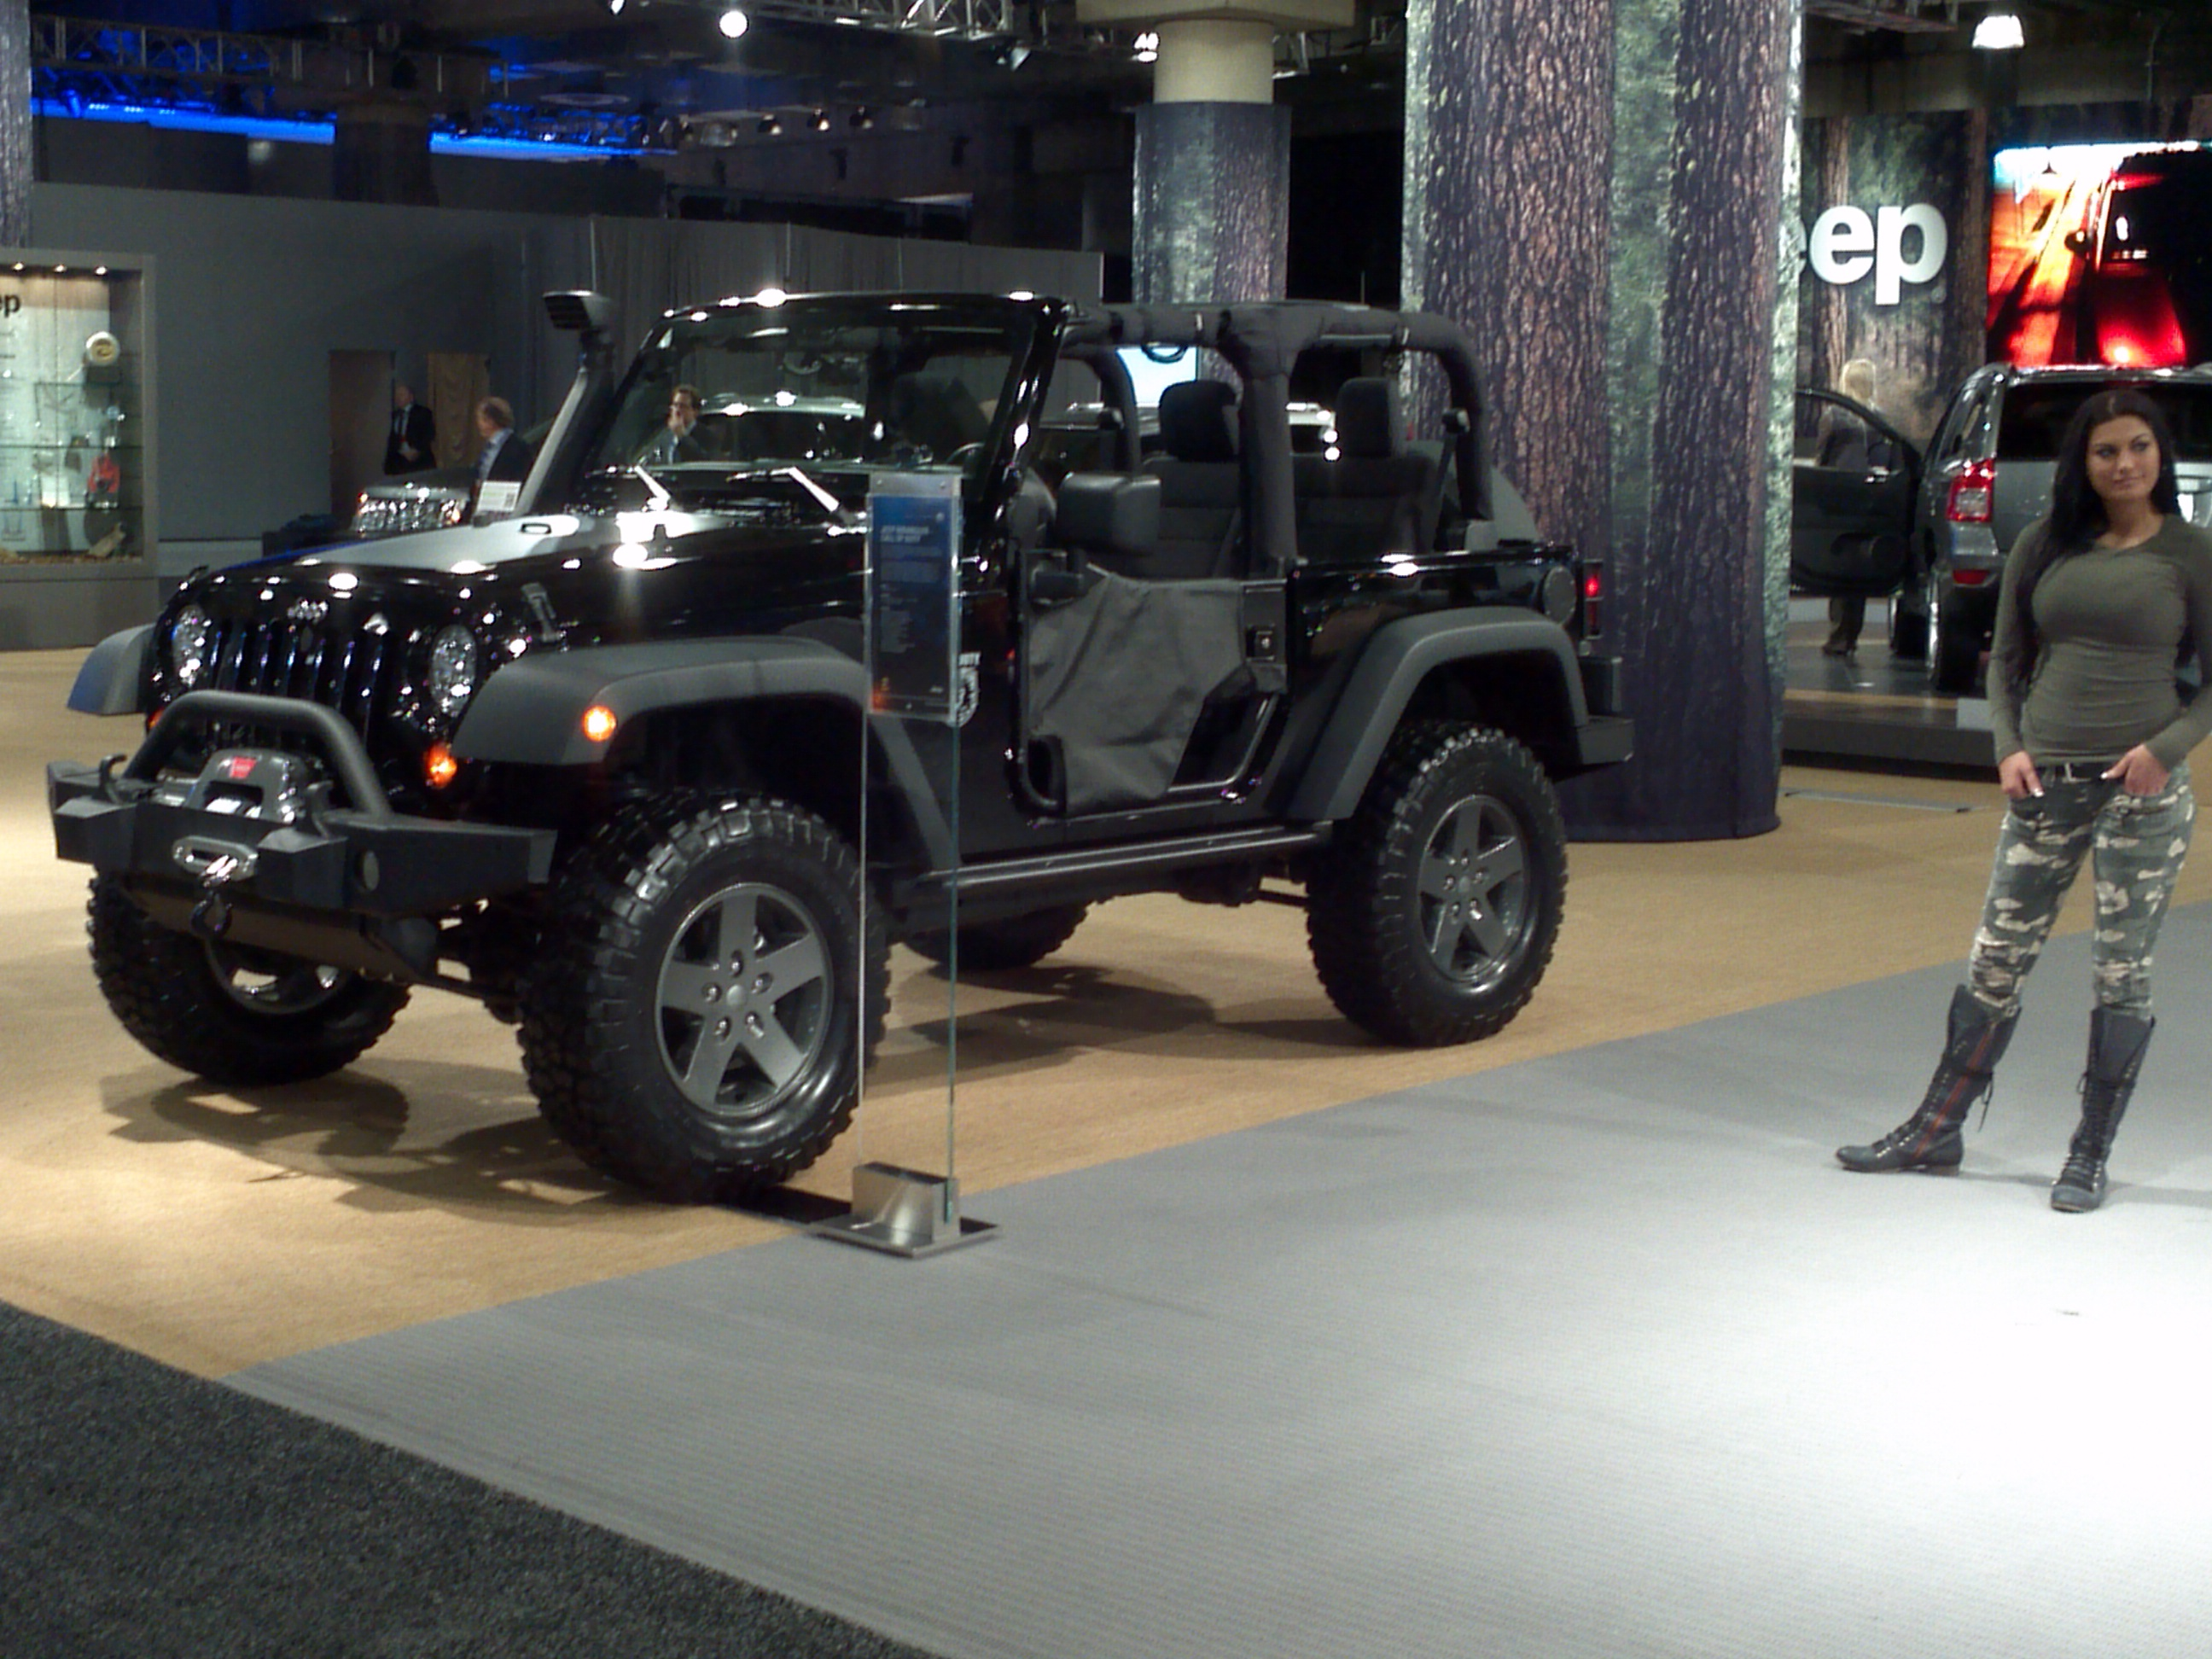 A 'Sexy' Jeep Wrangler Call of Duty Black Ops | Jeep ...